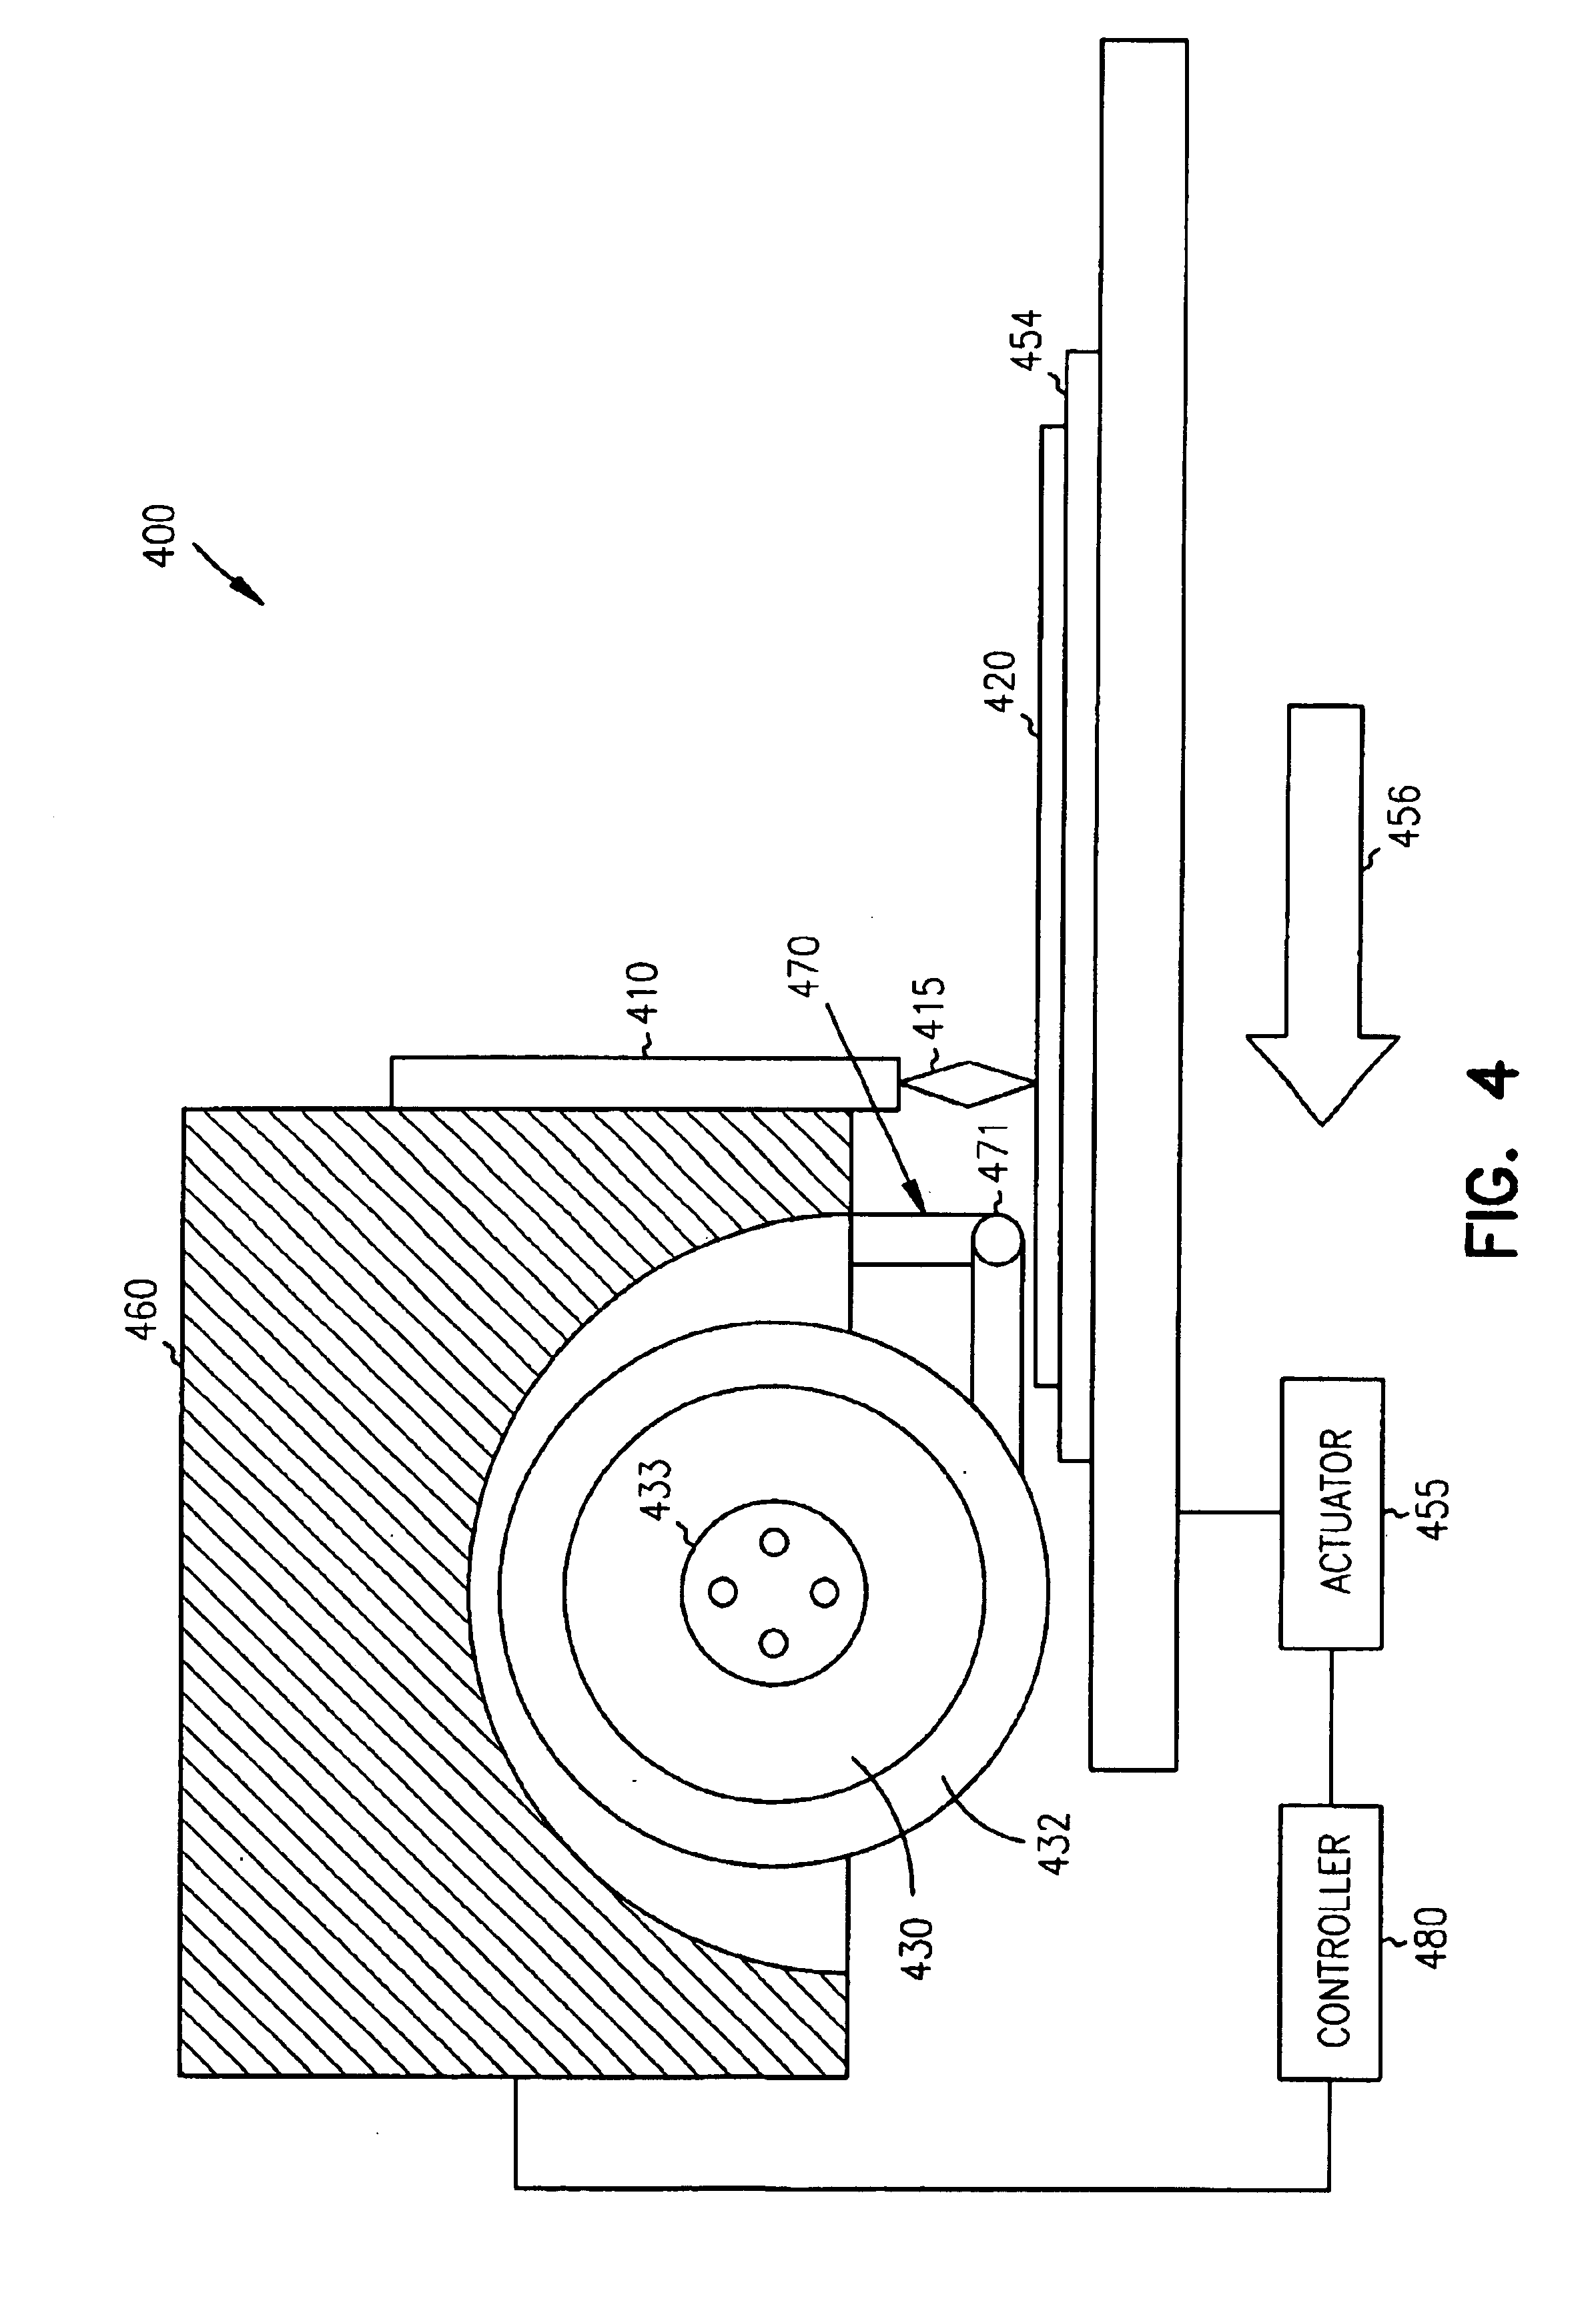 patent us6737606 - wafer dicing device and method